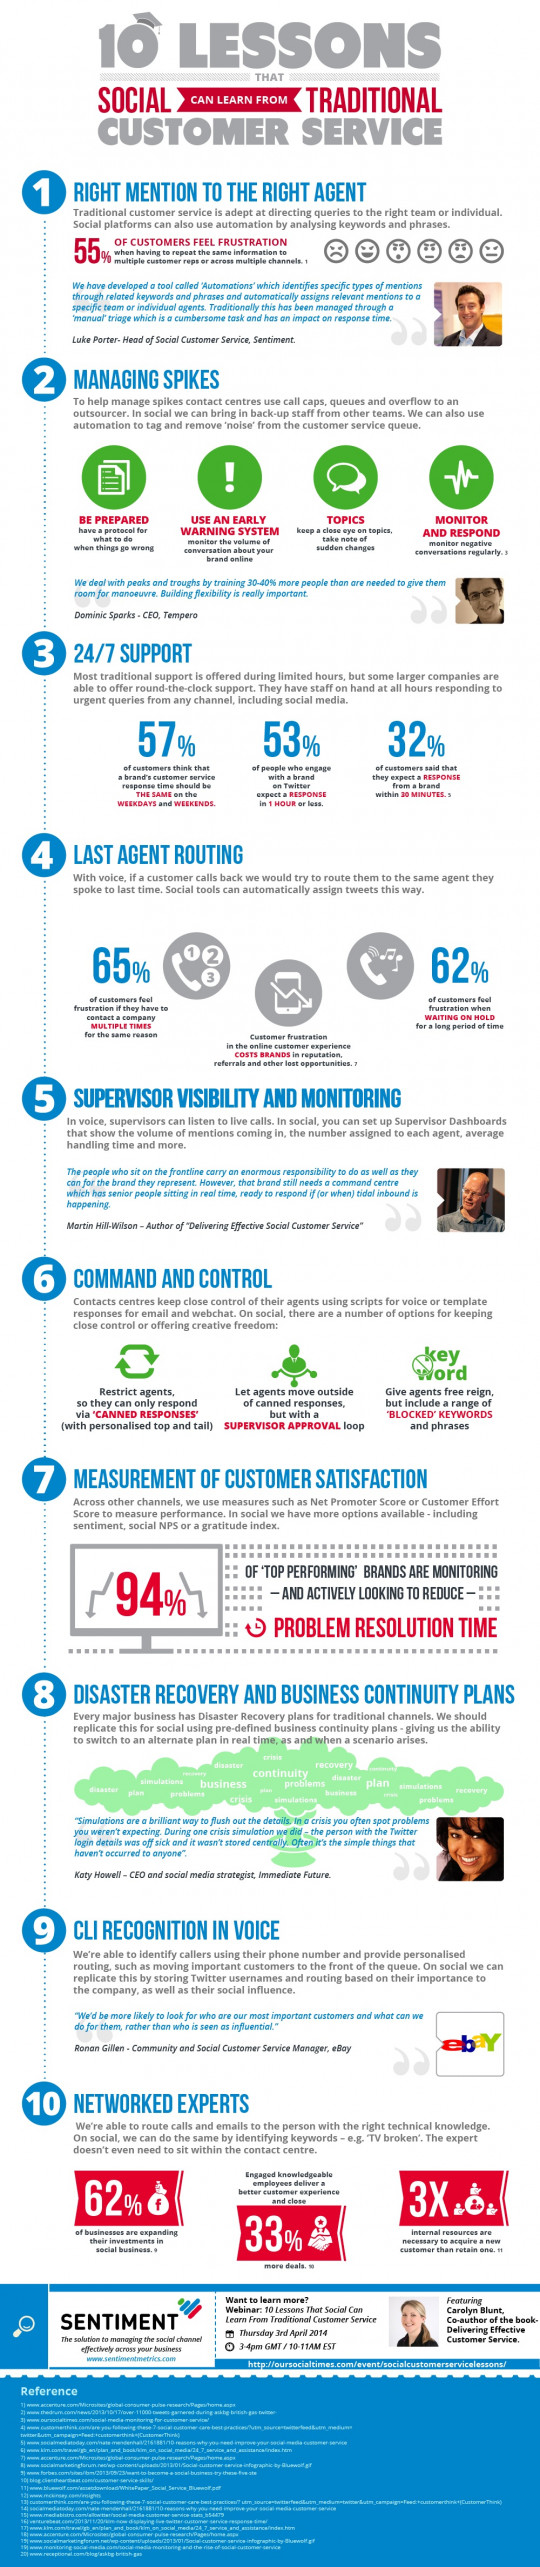 10 Lessons for Social Customer Service